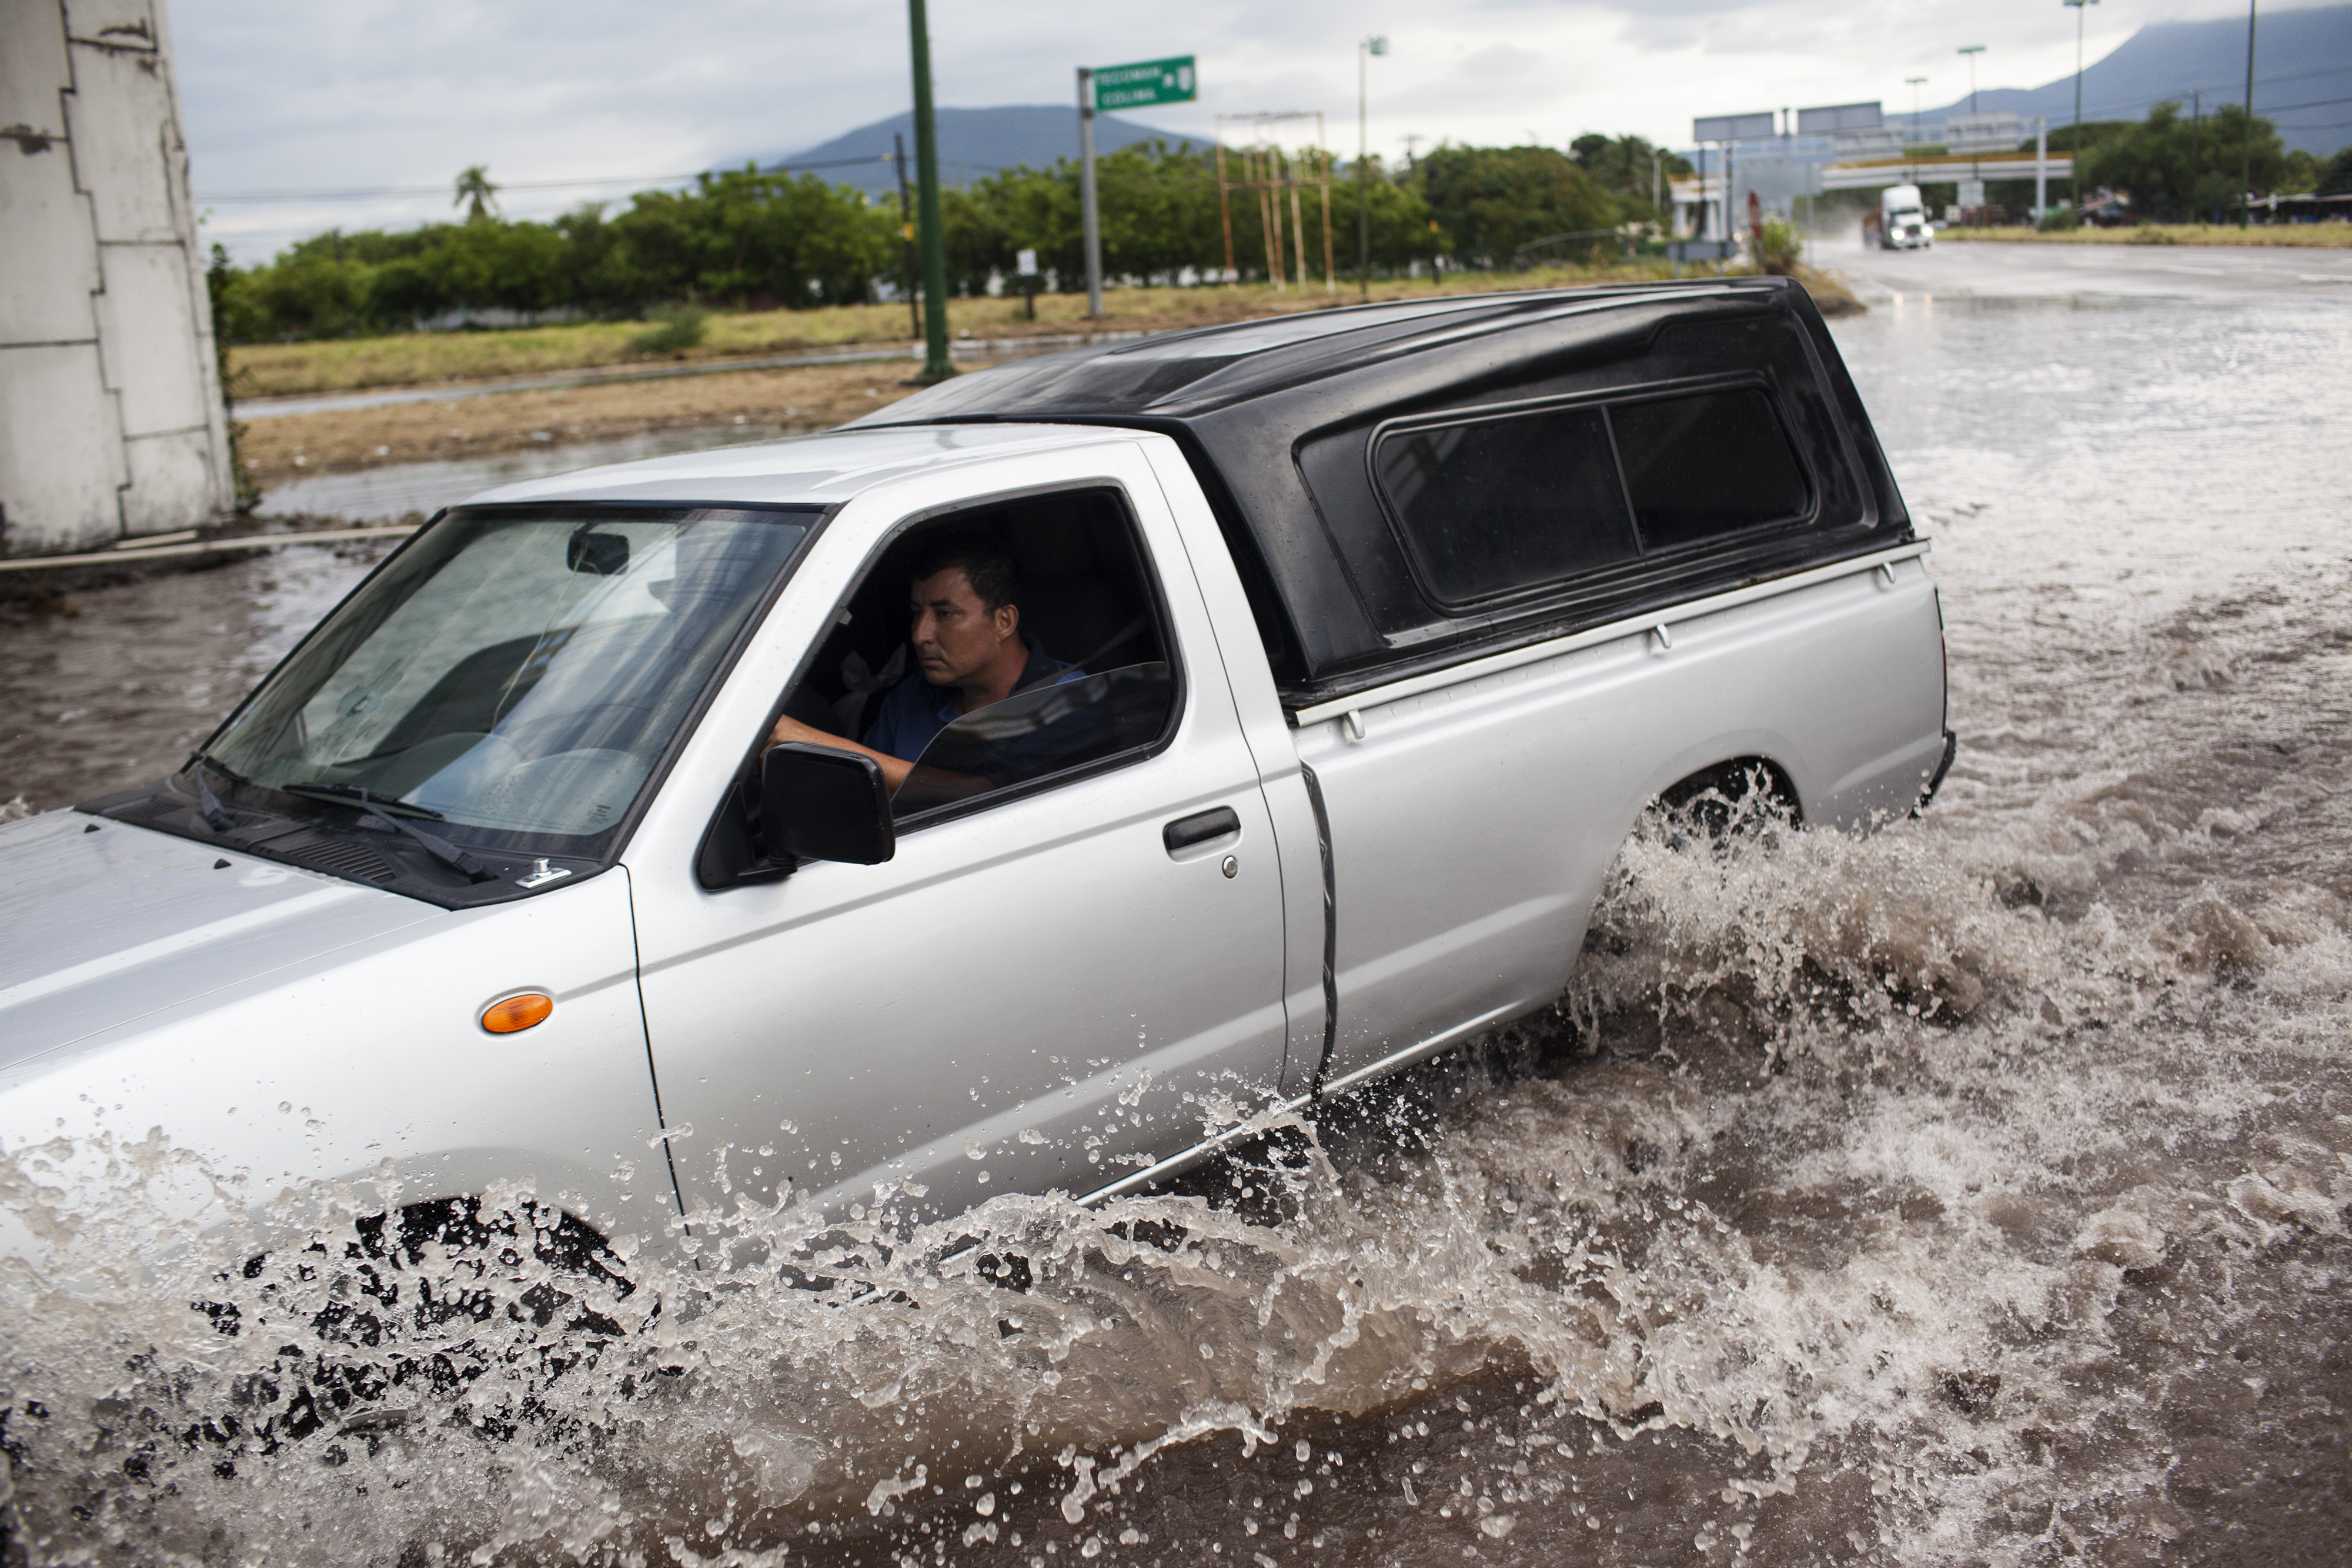 TECOMAN MX - OCTOBER 24: A truck drives through a flooded out turn off at the entrance to the city after heavy flooding from Hurriane Patricia October 24, 2015 in Tecoman, Colima, Mexico. Hurricane Patricia struck Mexico's West coast as the most powerful storm ever recorded in the Western Hemisphere but rapidly lost energy as it moved inland.  (Photo by Brett Gundlock/Getty Images)